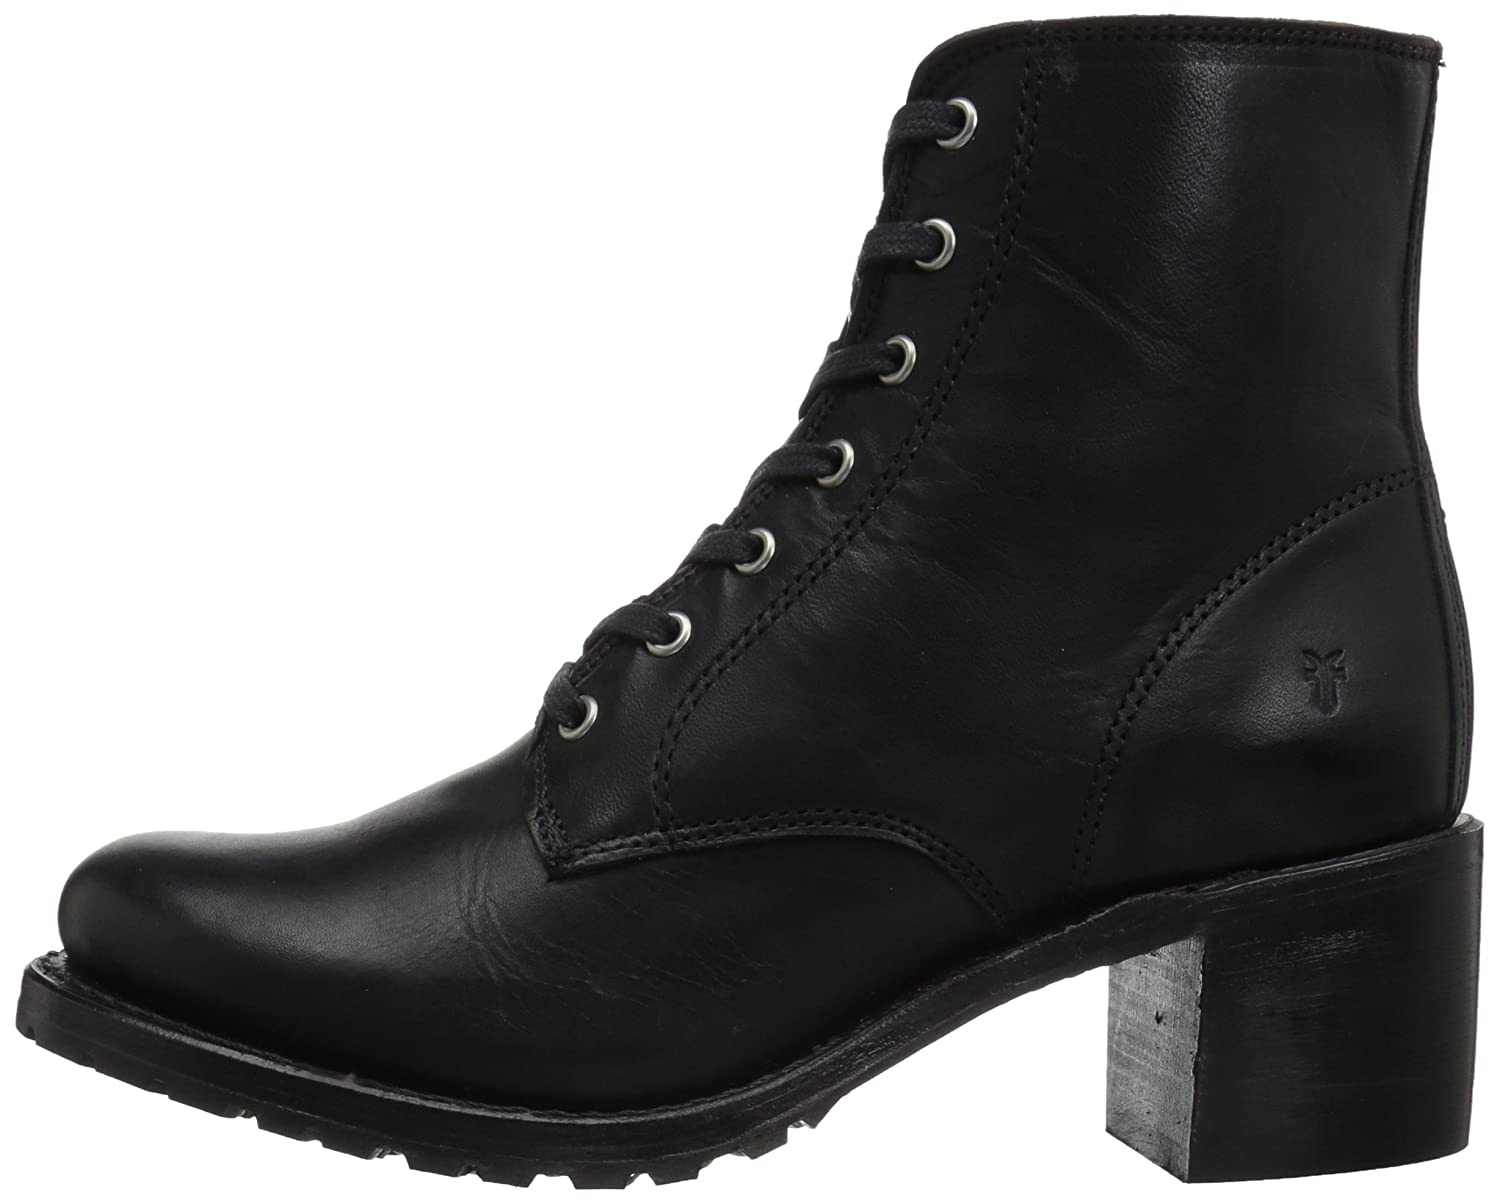 FRYE up Women's Sabrina 6g Lace up FRYE Boot B06X8WMLV4 9 B(M) US|Black d253ae